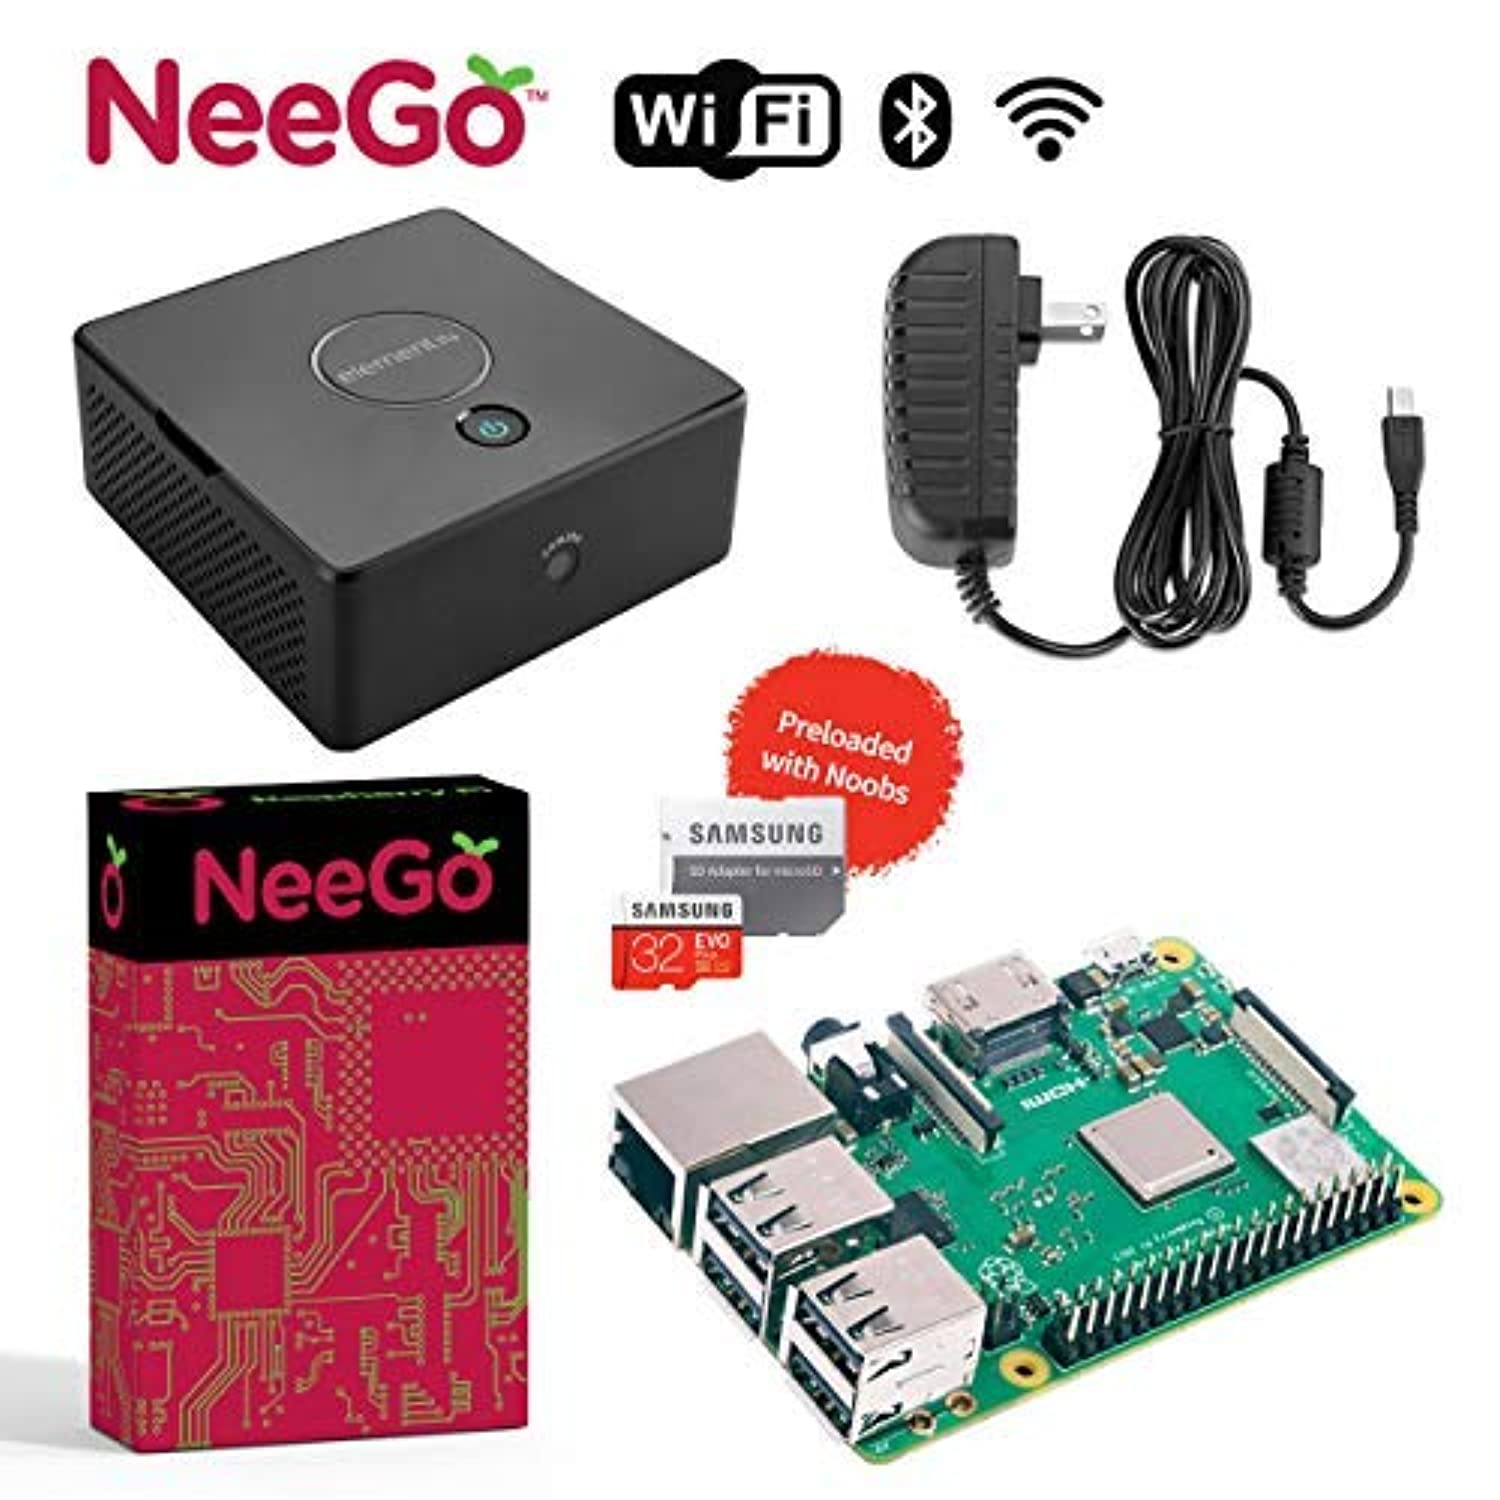 持続する解決する利点NeeGo Bundle – 4-Piece Build Your Own Computer Set Includes Raspberry Pi 3 B+ Motherboard, 32G SD Card w/Preloaded Noobs Operating System, Desktop Case Enclosure & 6-Foot 2.5A Power Supply [並行輸入品]